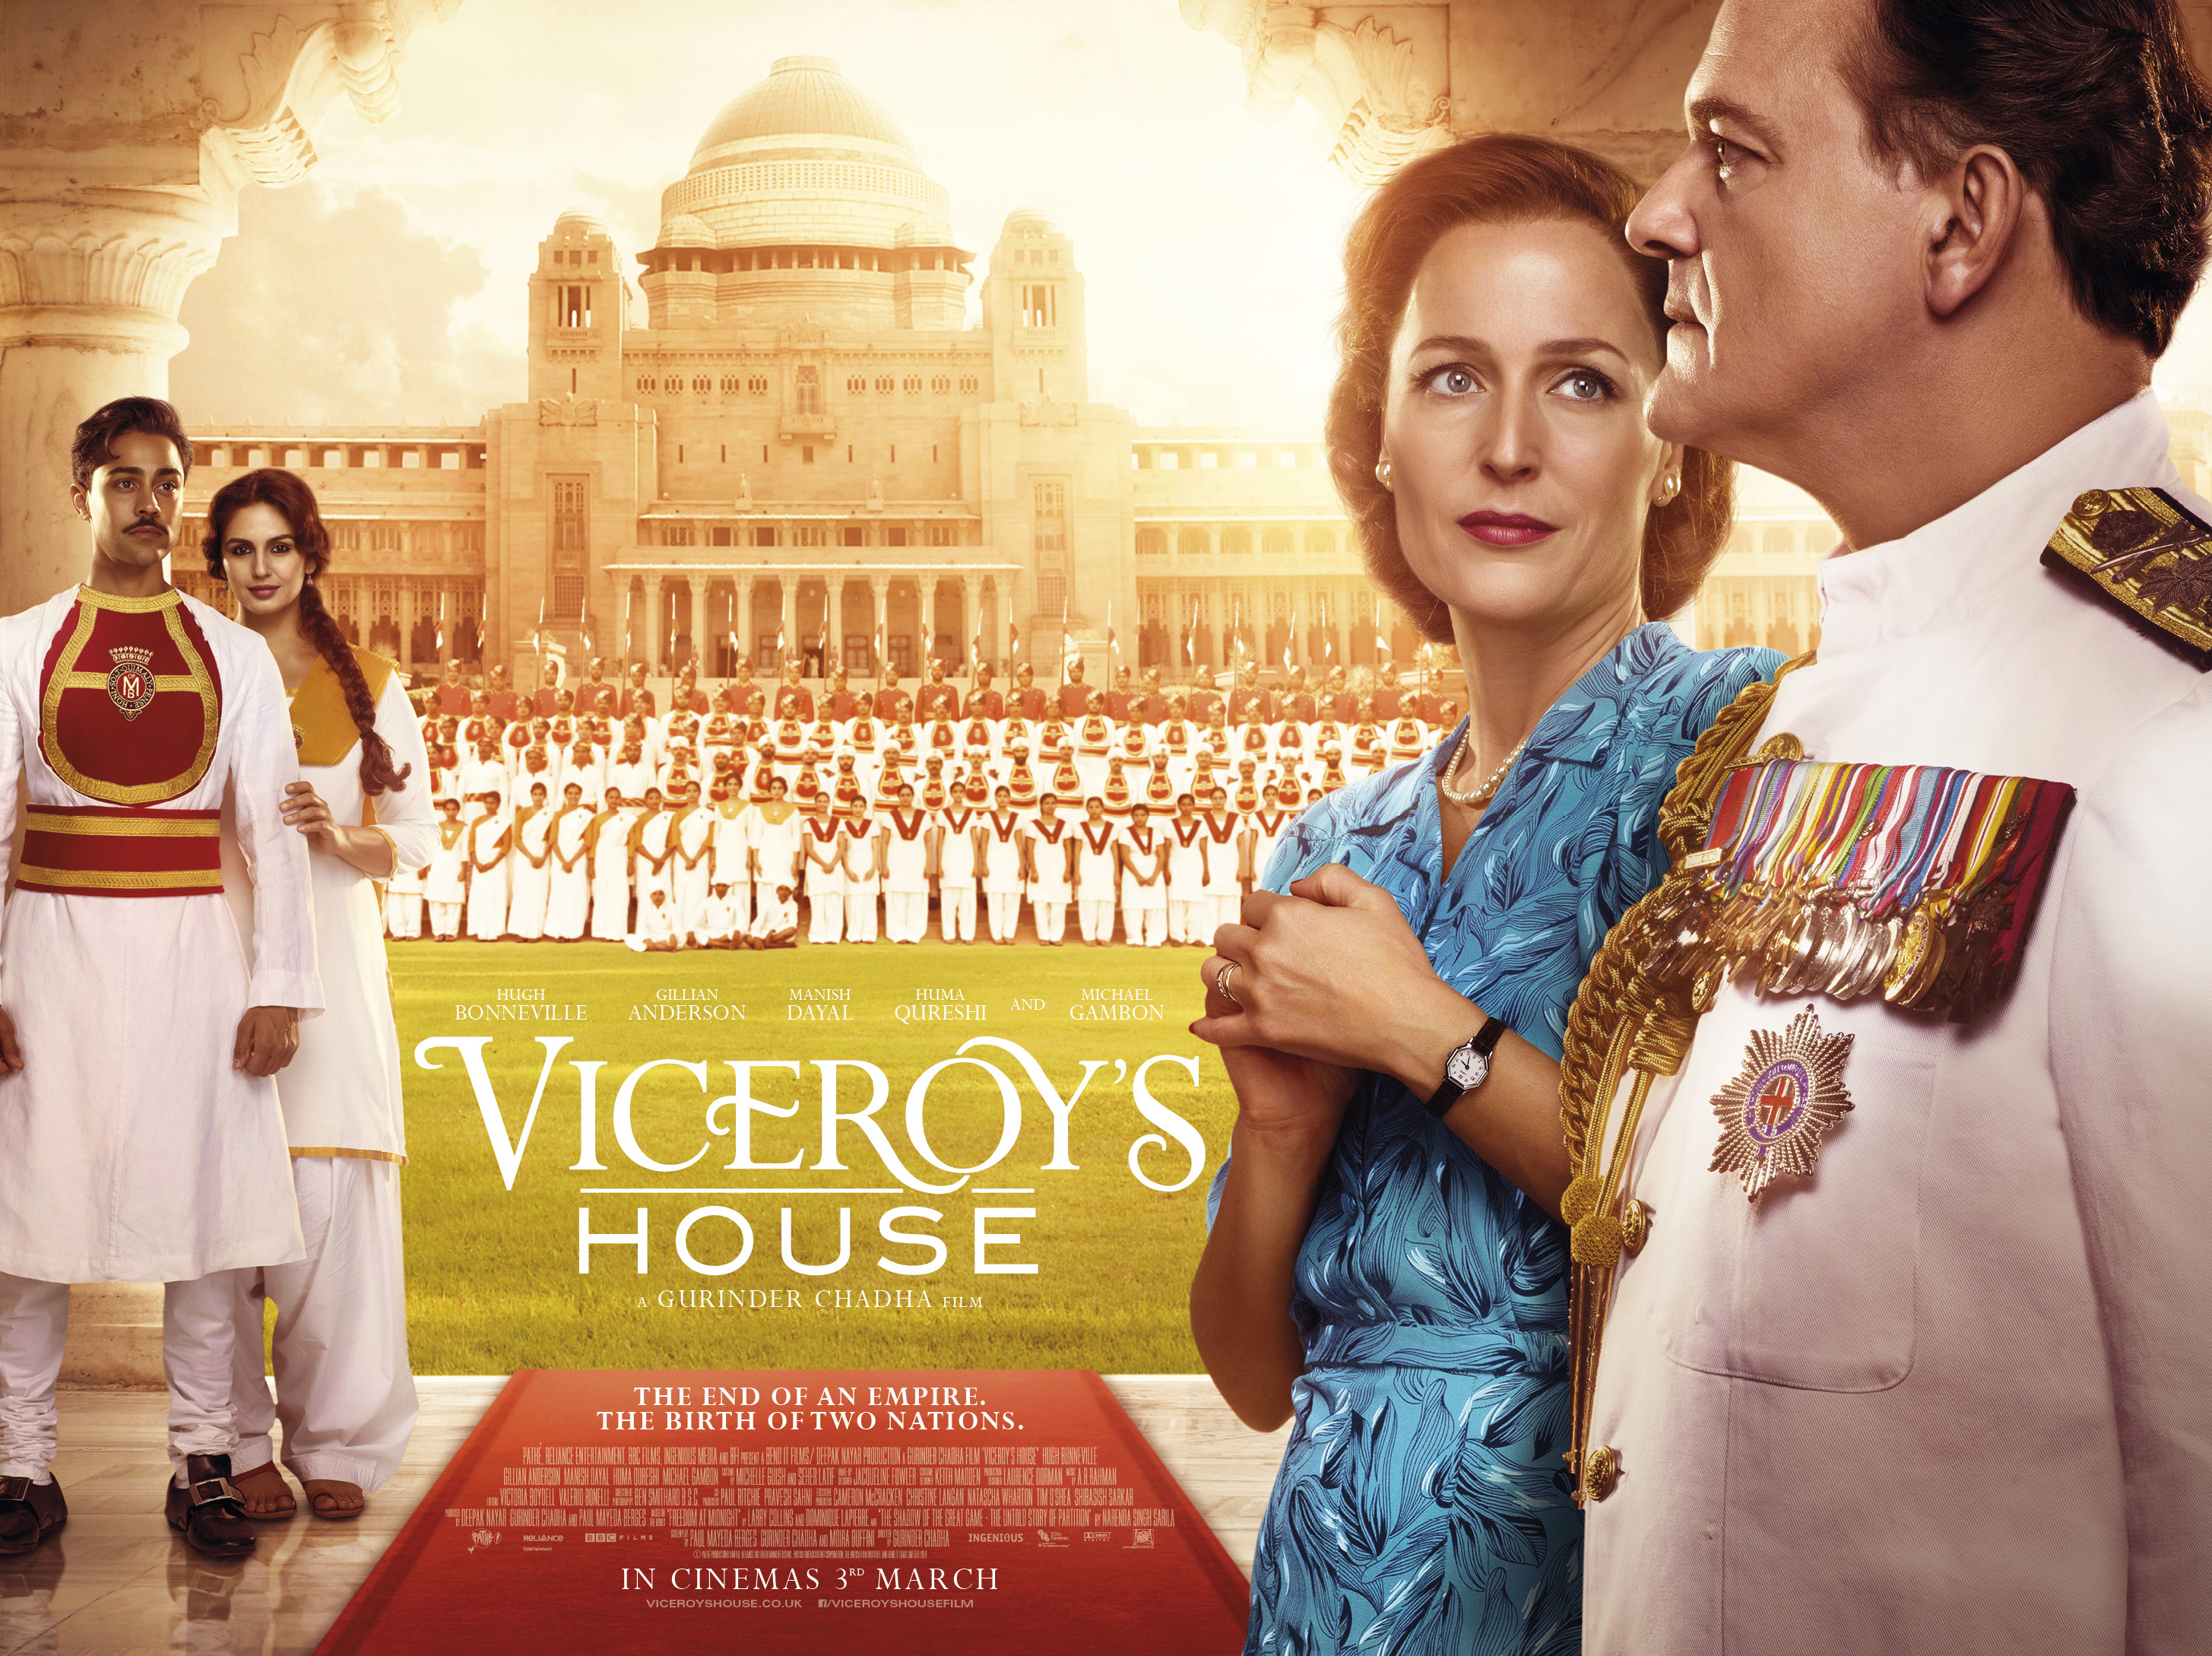 Viceroy's House, directed by Gurinder Chadha, starring Hugh Bonneville, Gillian Anderson and Om Puri